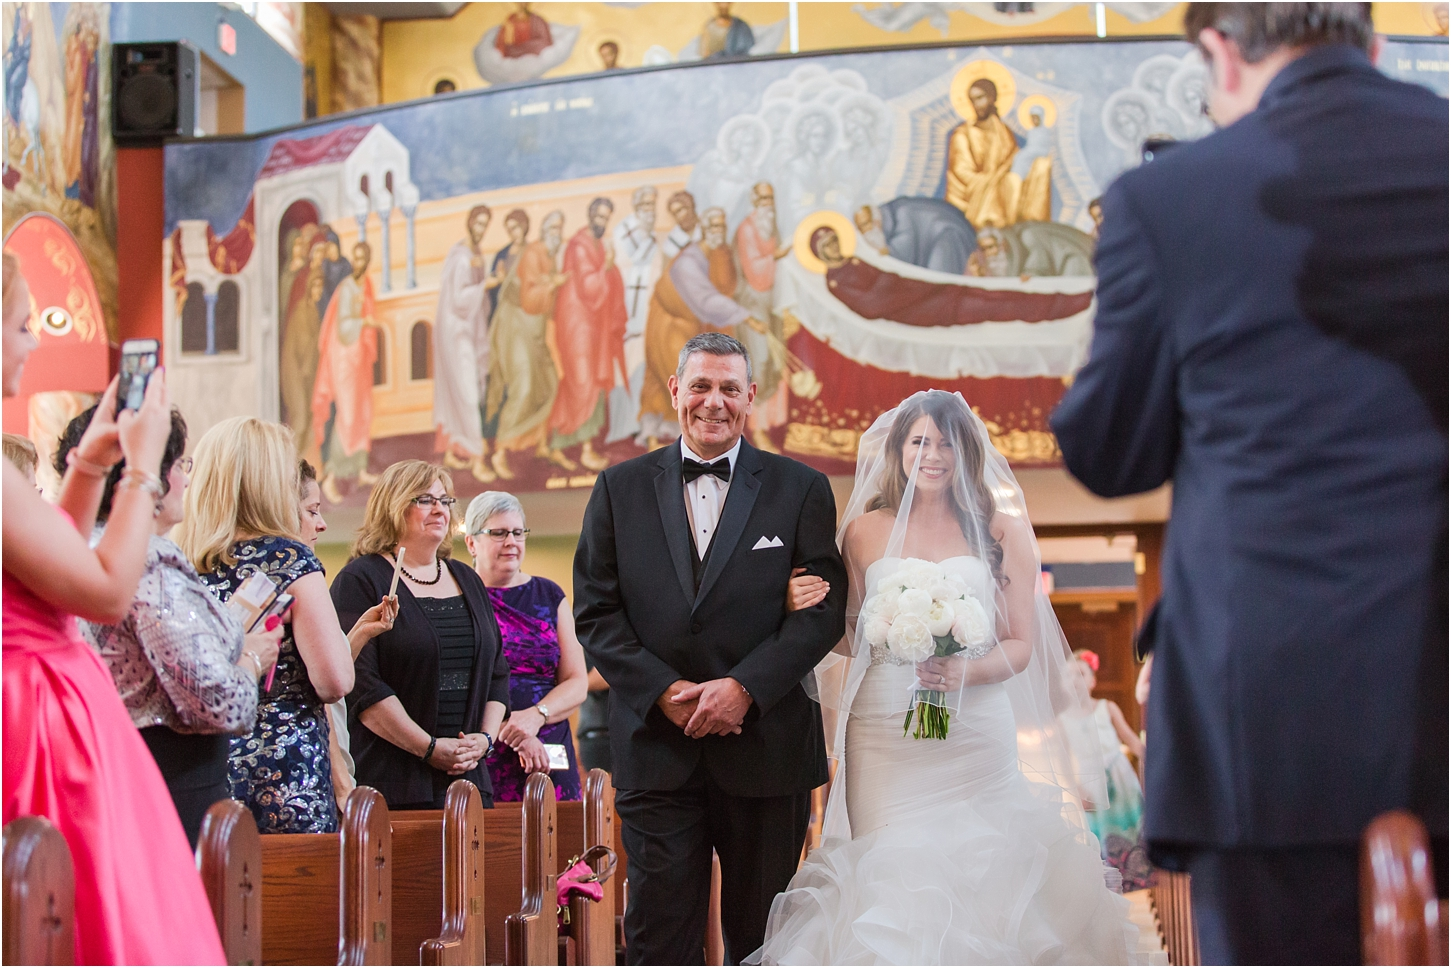 why-you-should-have-an-unplugged-wedding-by-courtney-carolyn-photography_0005.jpg